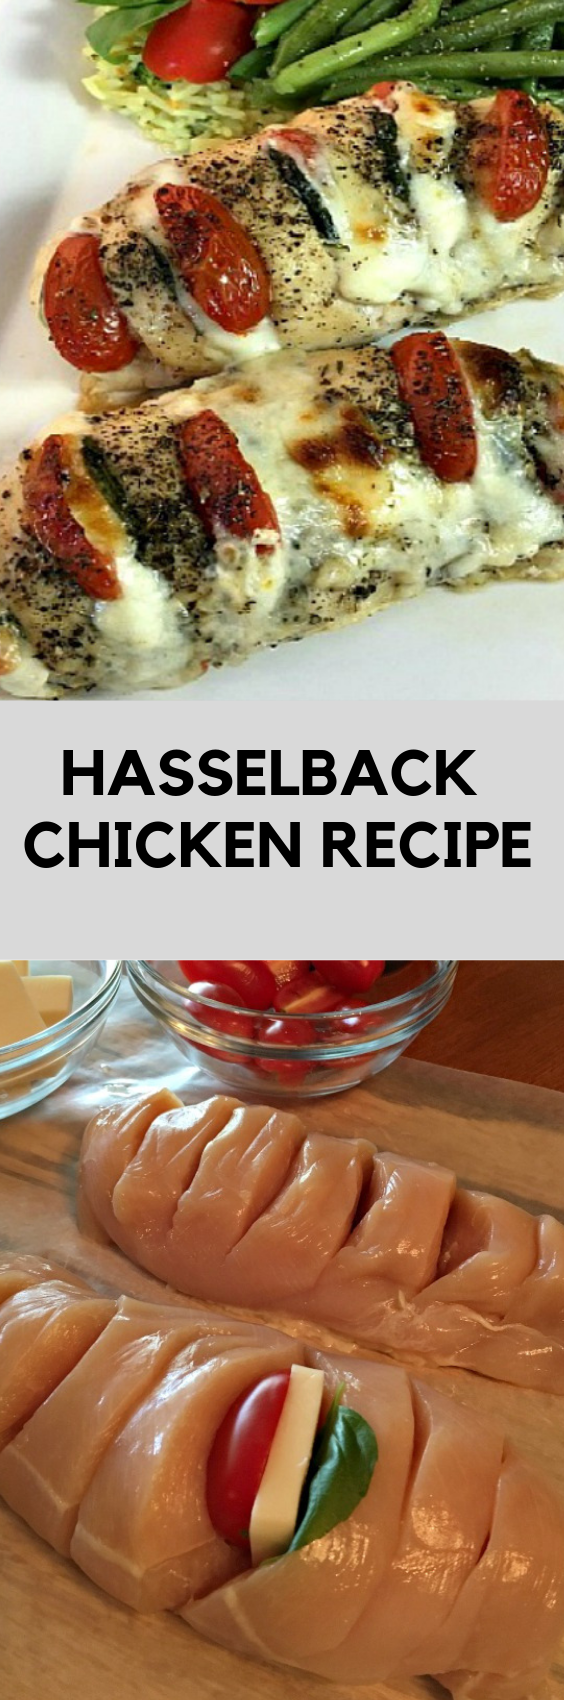 HASSELBACK CHICKEN RECIPE #hasselbackchicken Hasselback Chicken is stuffed with mozzarella, tomato and basil making it a new and delicious way to enjoy chicken for dinner! #hasselback #chicken #recipes #food #deliciousrecipe #dinnerrecipe #hasselbackchicken